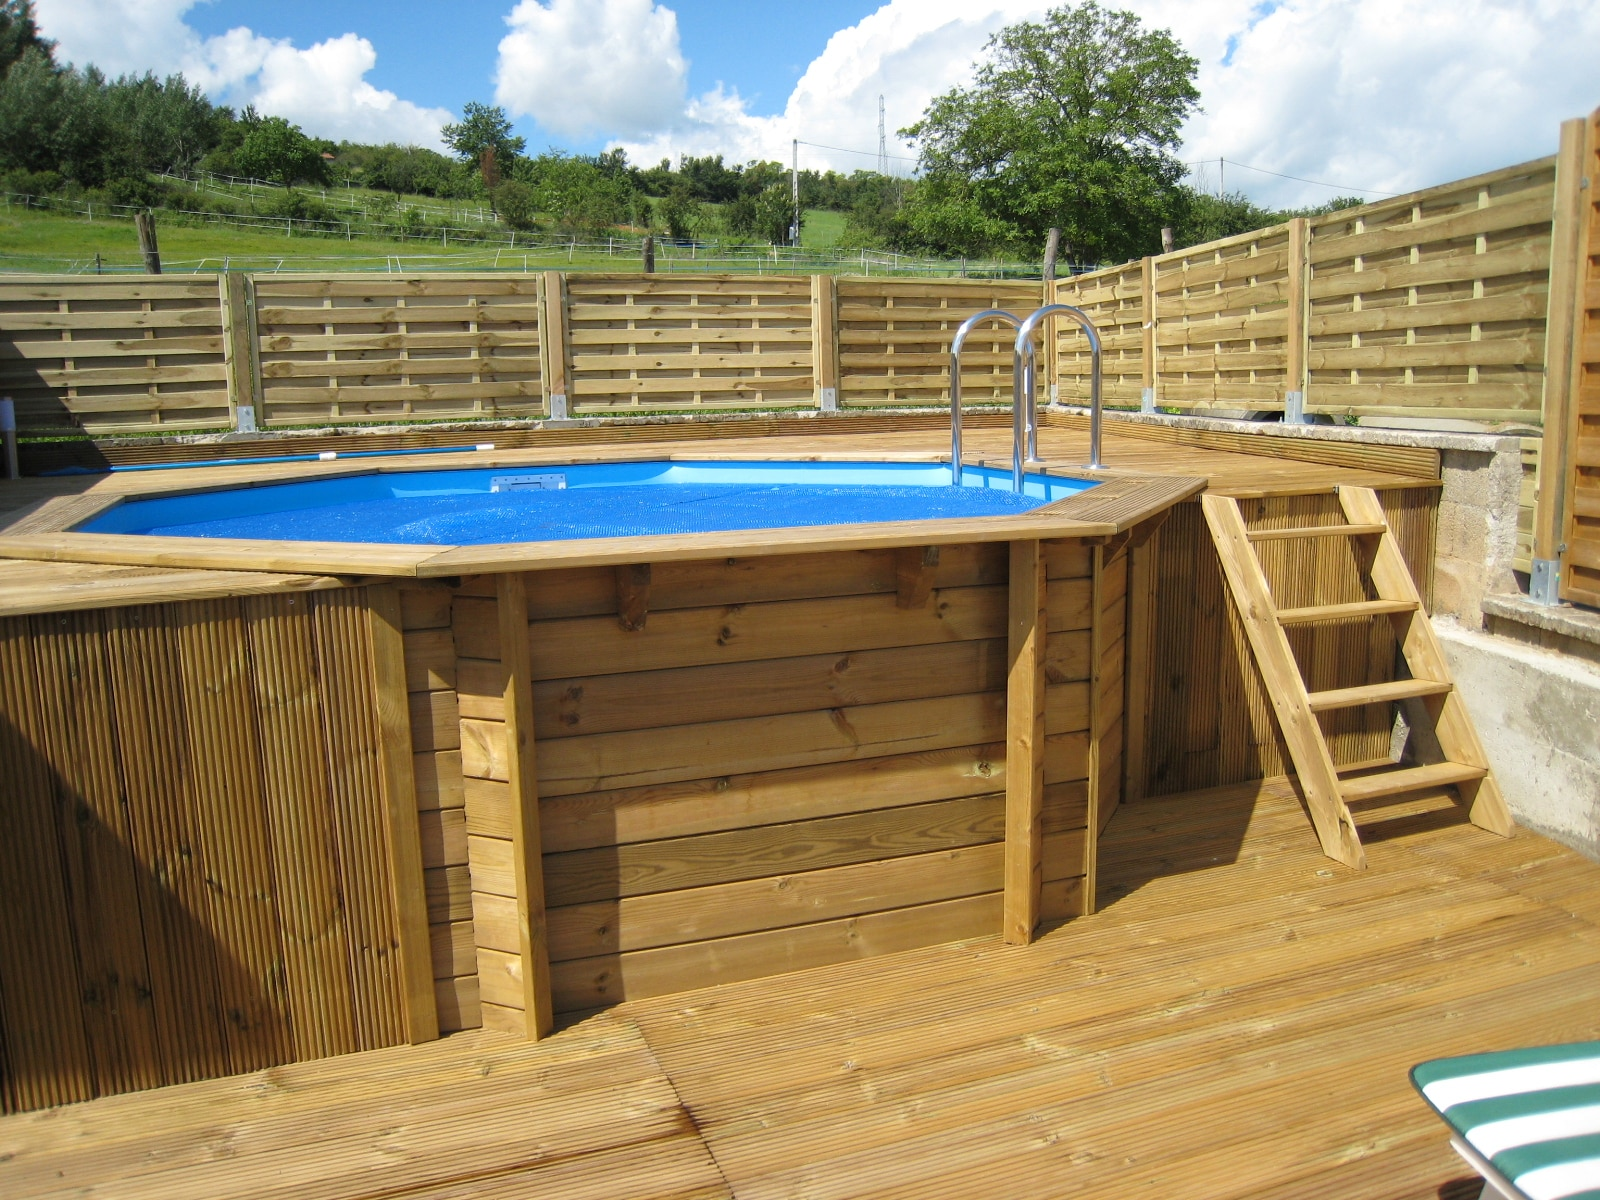 Comment monter une piscine en bois for Piscine en sol